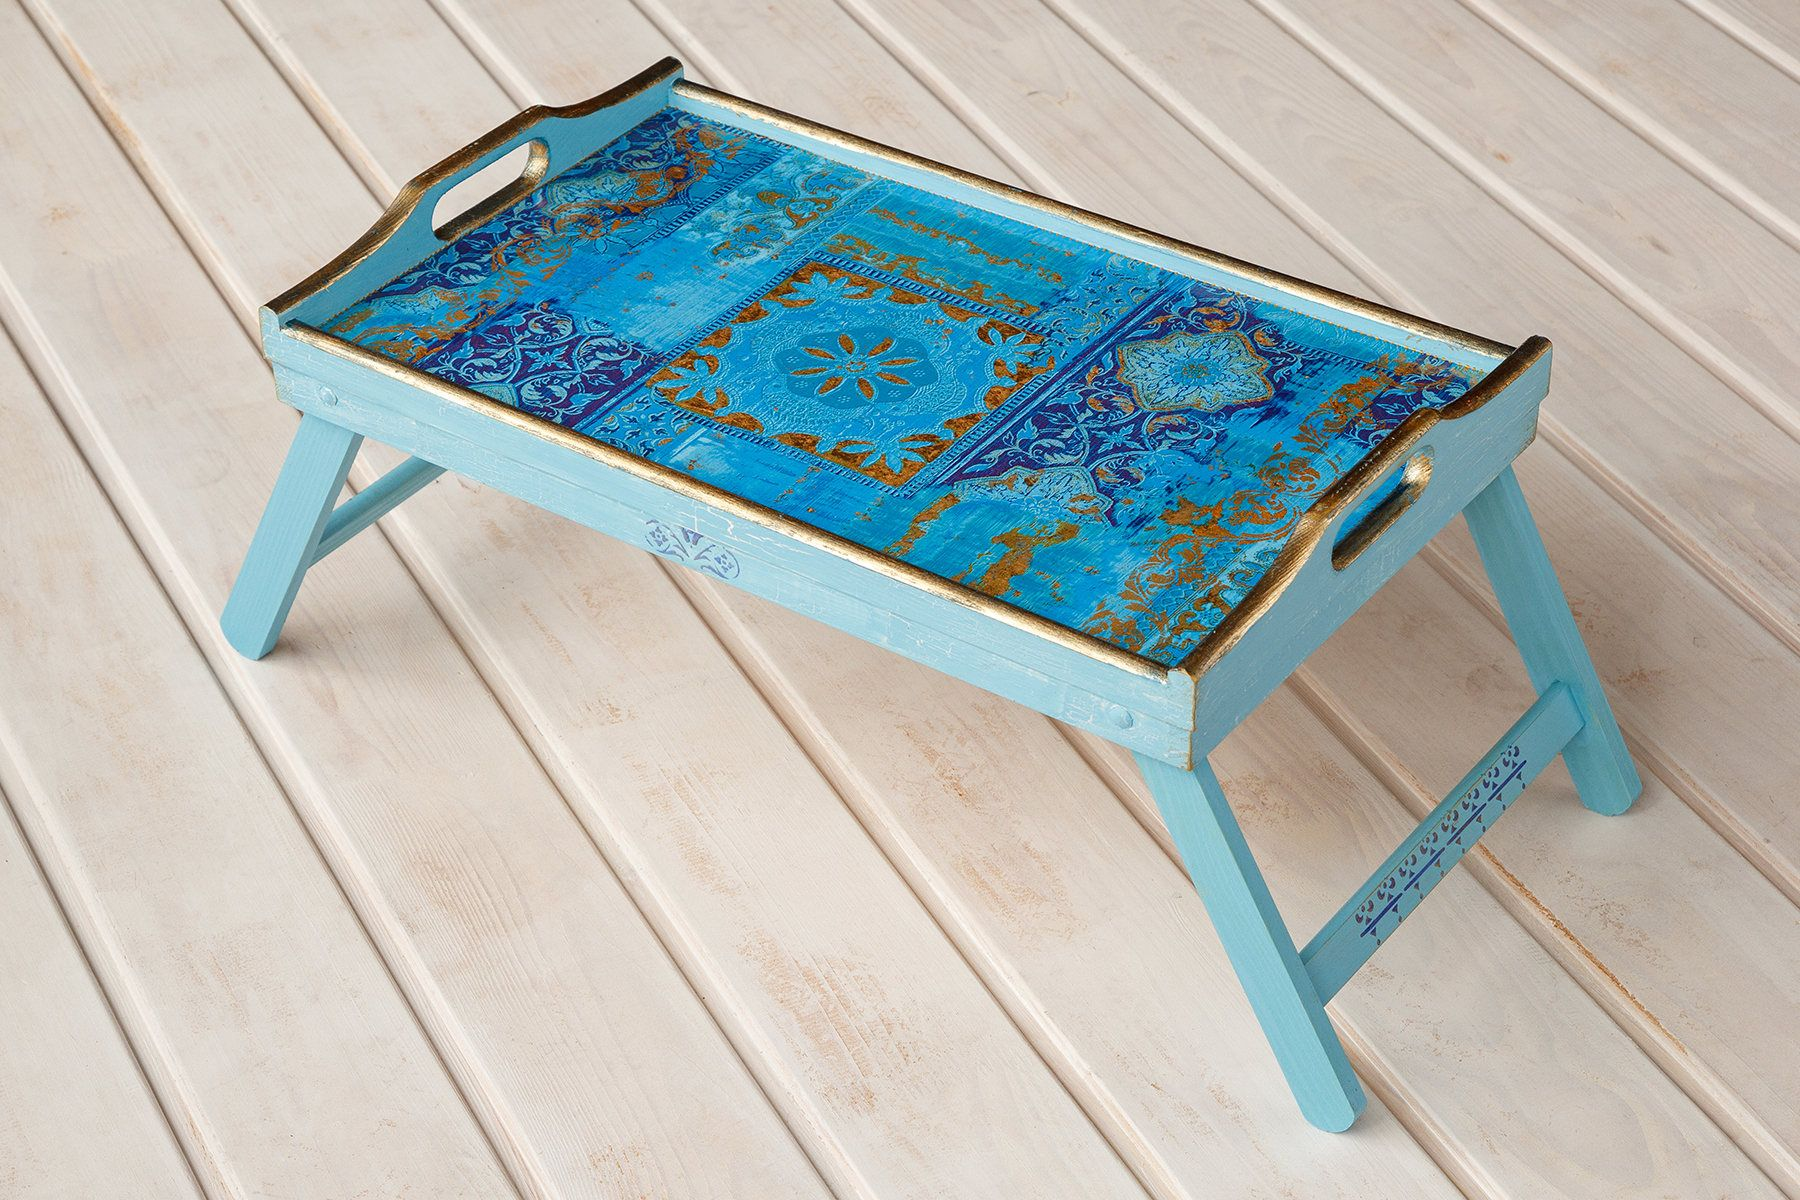 Breakfast Table Tray Folding Breakfast Table With Legs Blue Bedding Bed Tray Wooden Serving Trays